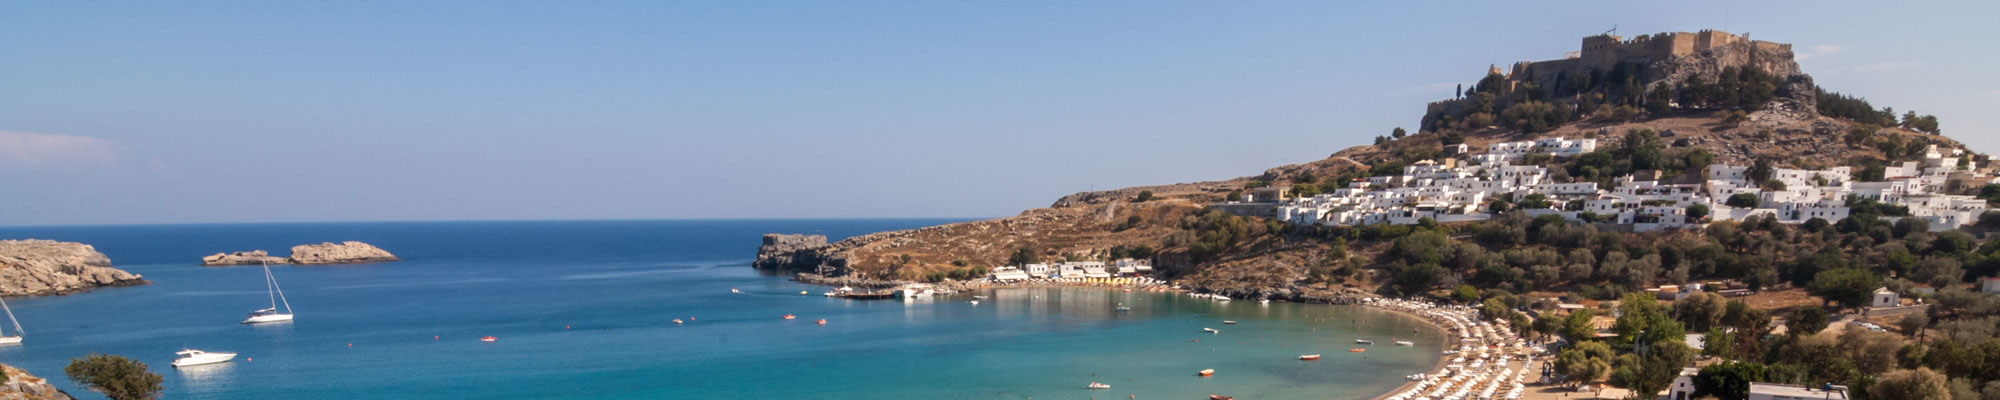 Lindos village and Acropolis